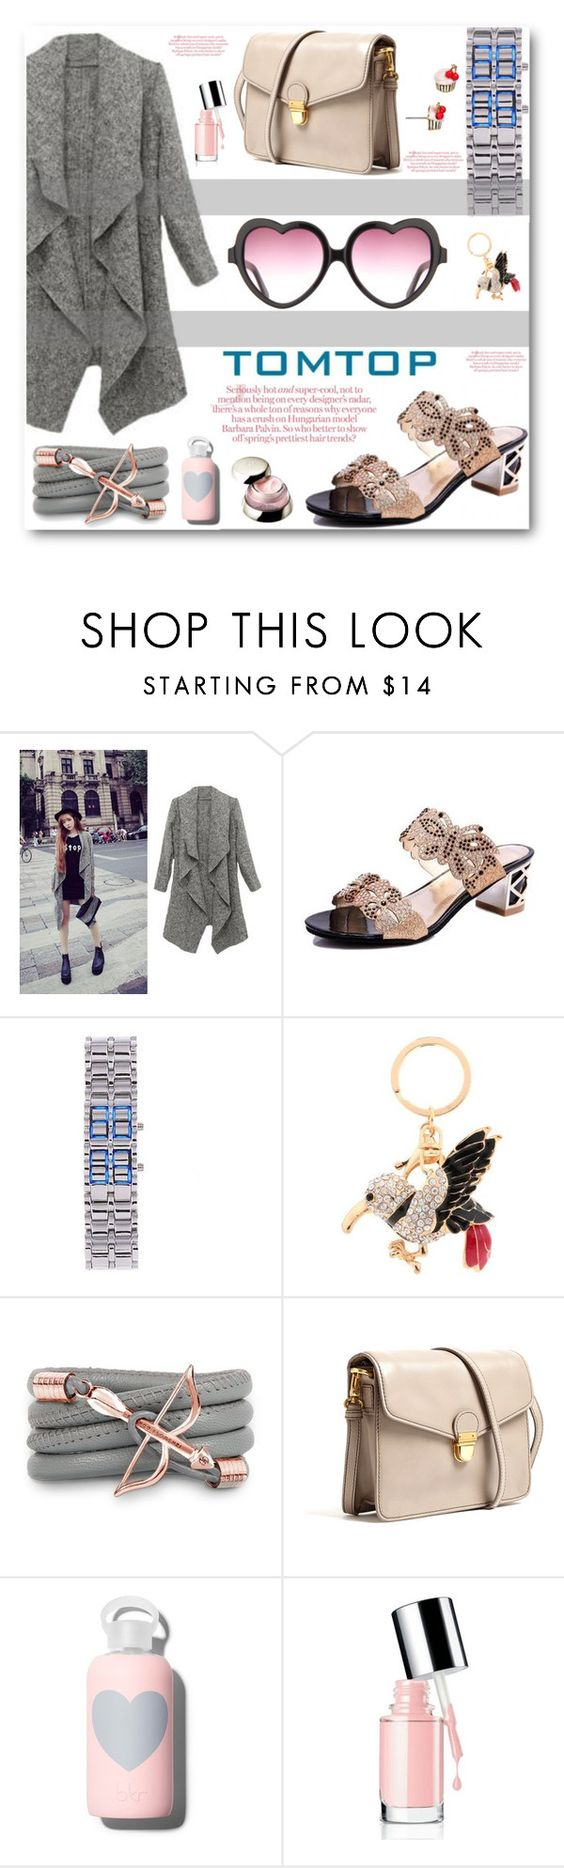 """""""TOMTOP"""" by angelstar92 ❤ liked on Polyvore featuring Monza, Marc by Marc Jacobs, bkr, Kate Spade, Shiseido, tomtop and tomtopstyle"""